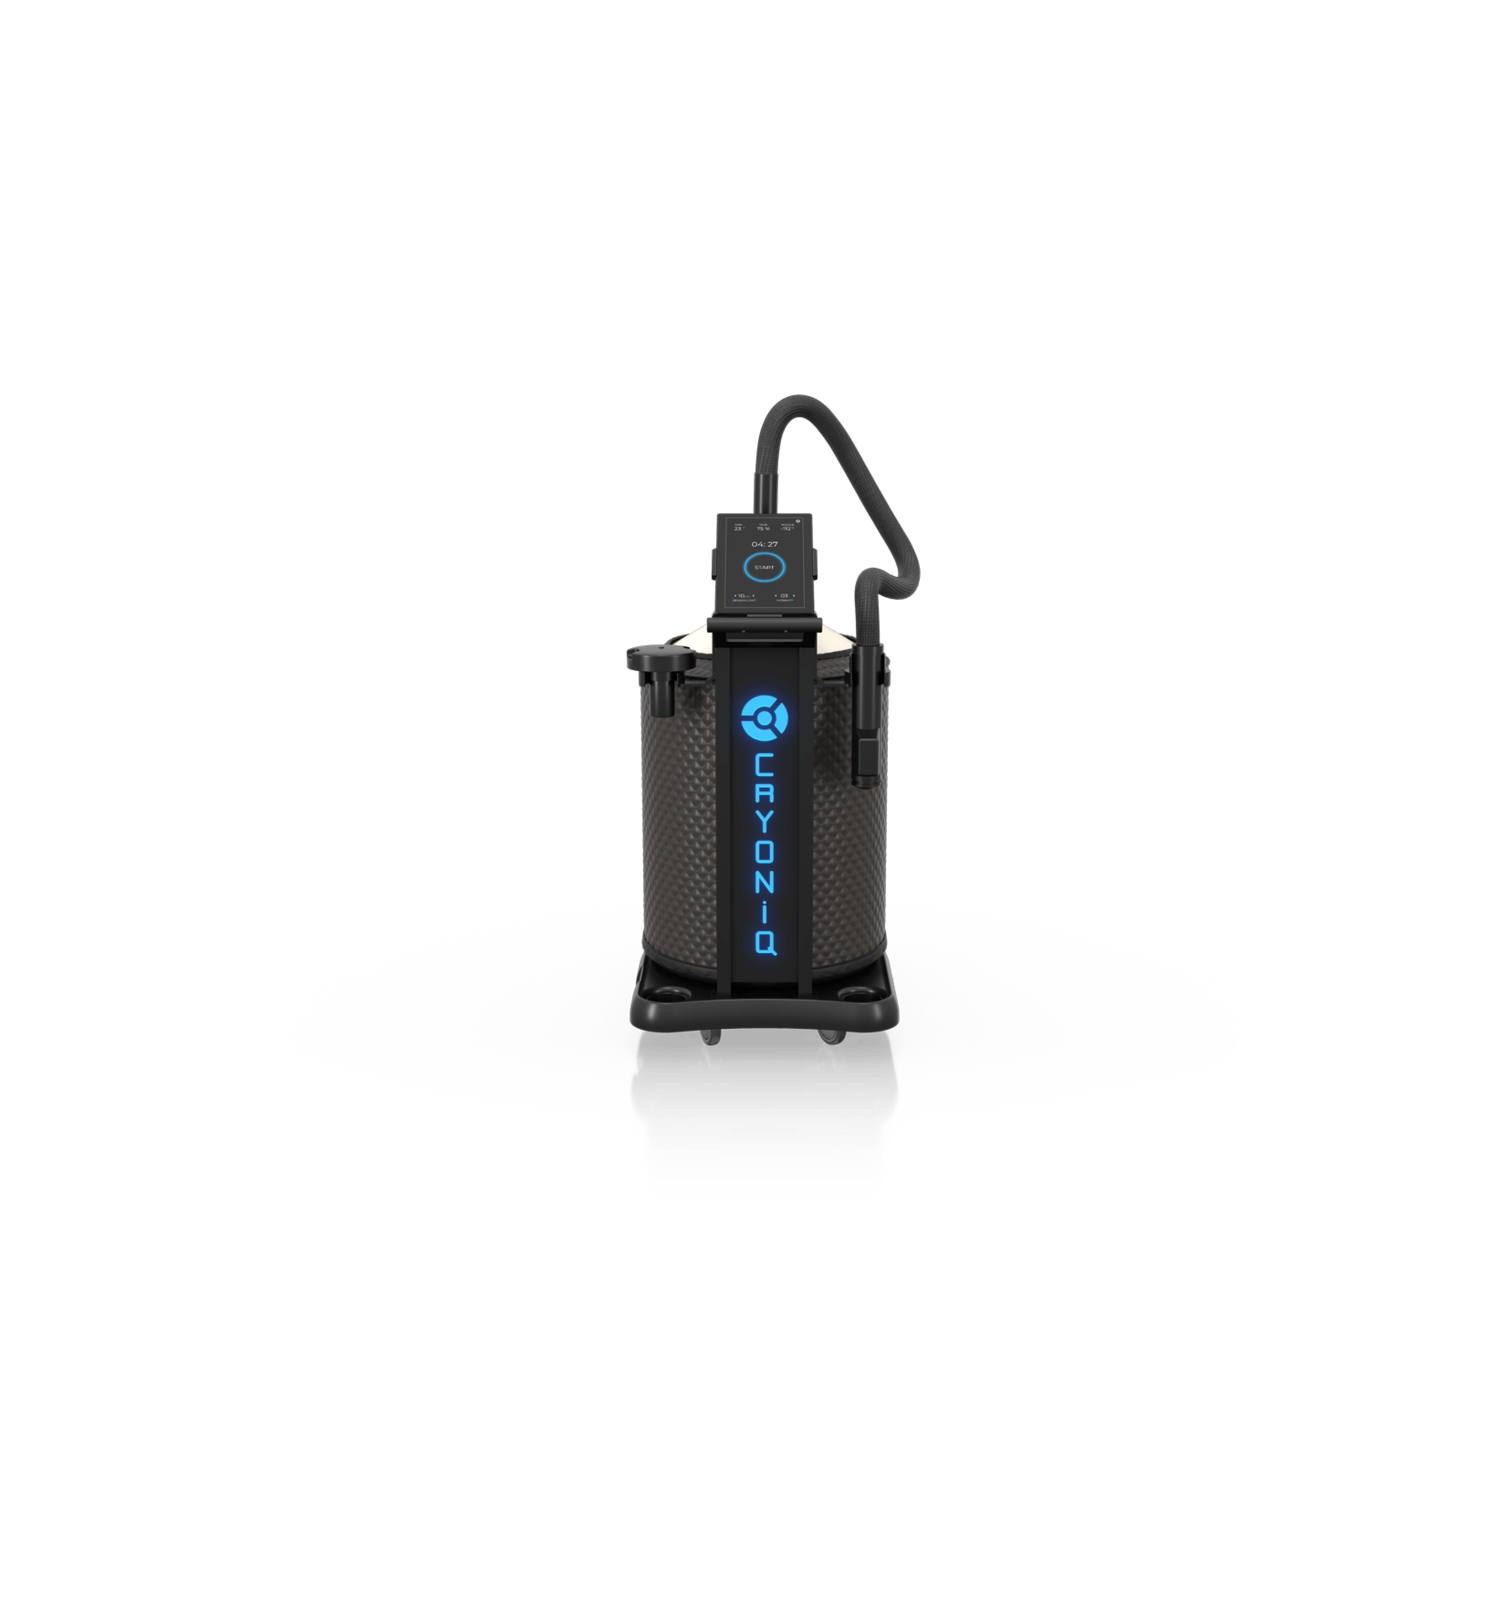 CRYO LC localized cryotherapy device